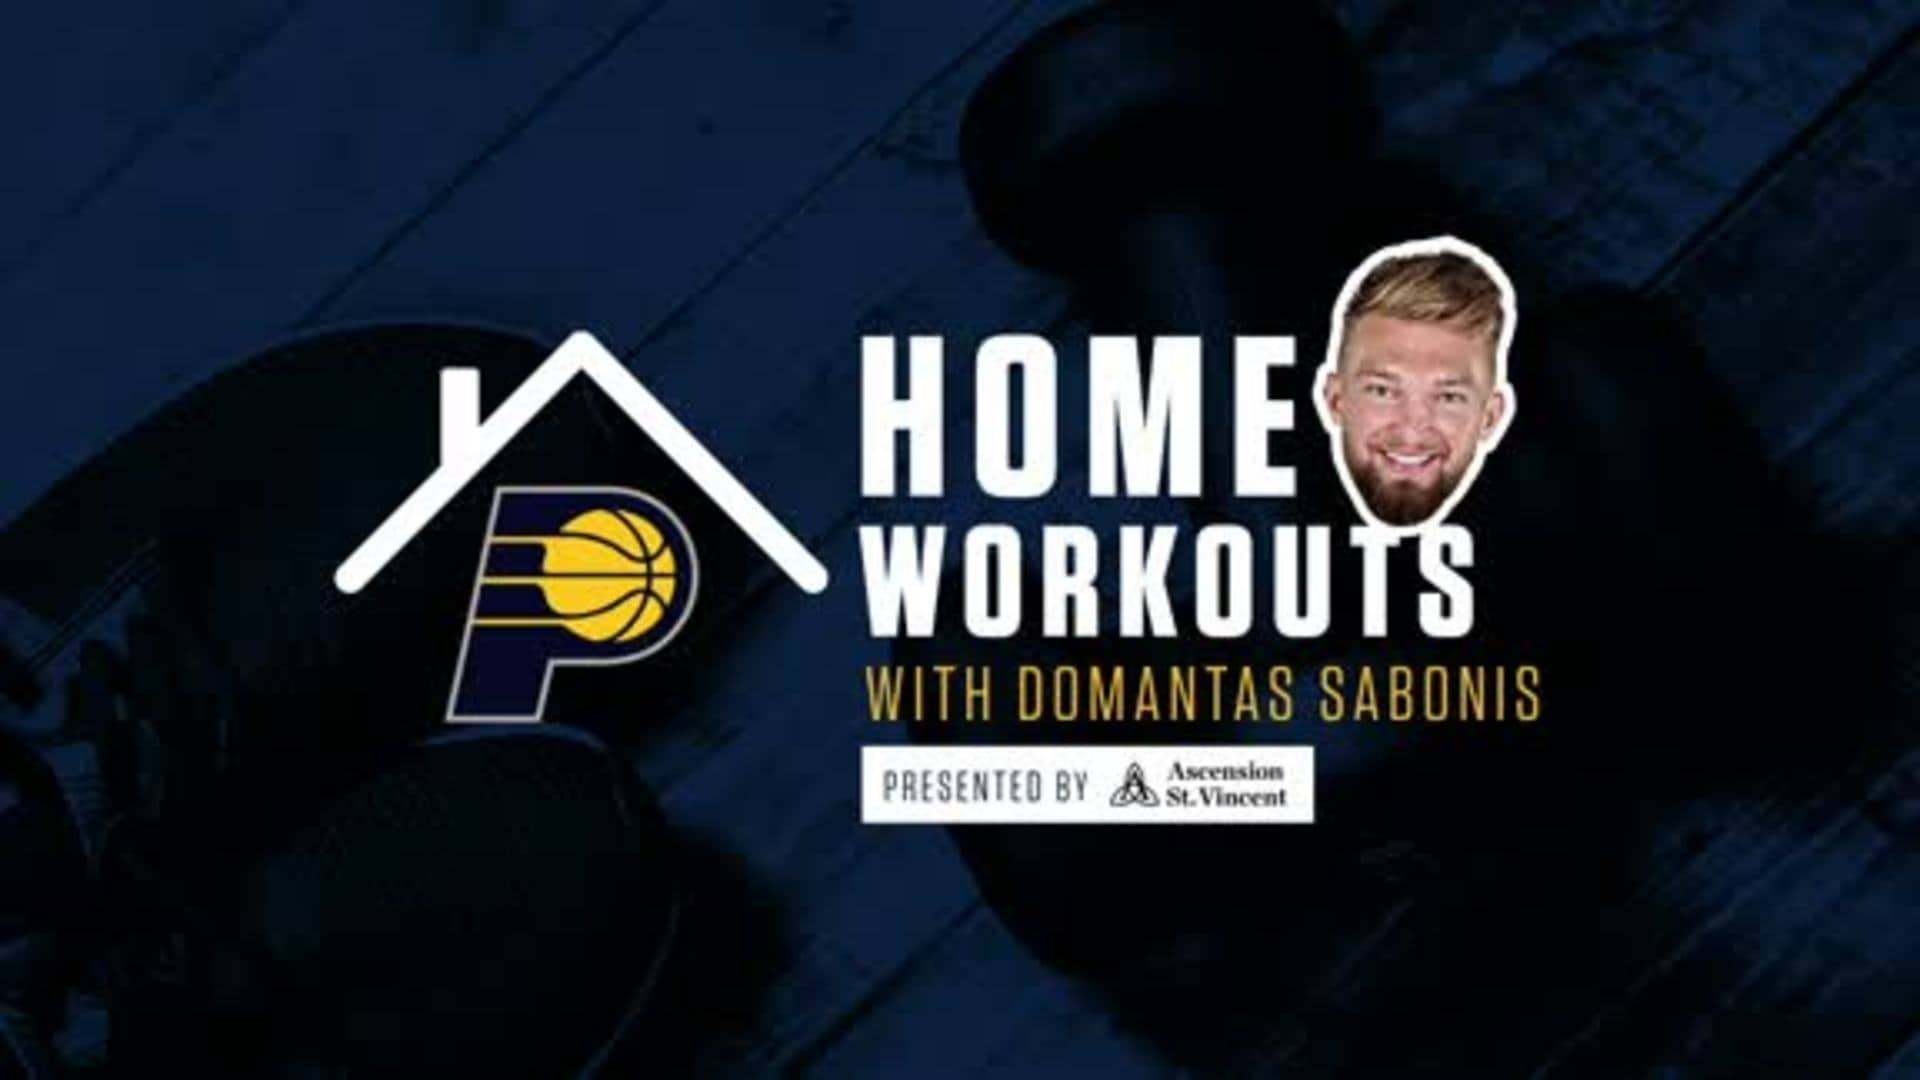 Home Workouts with Domantas Sabonis